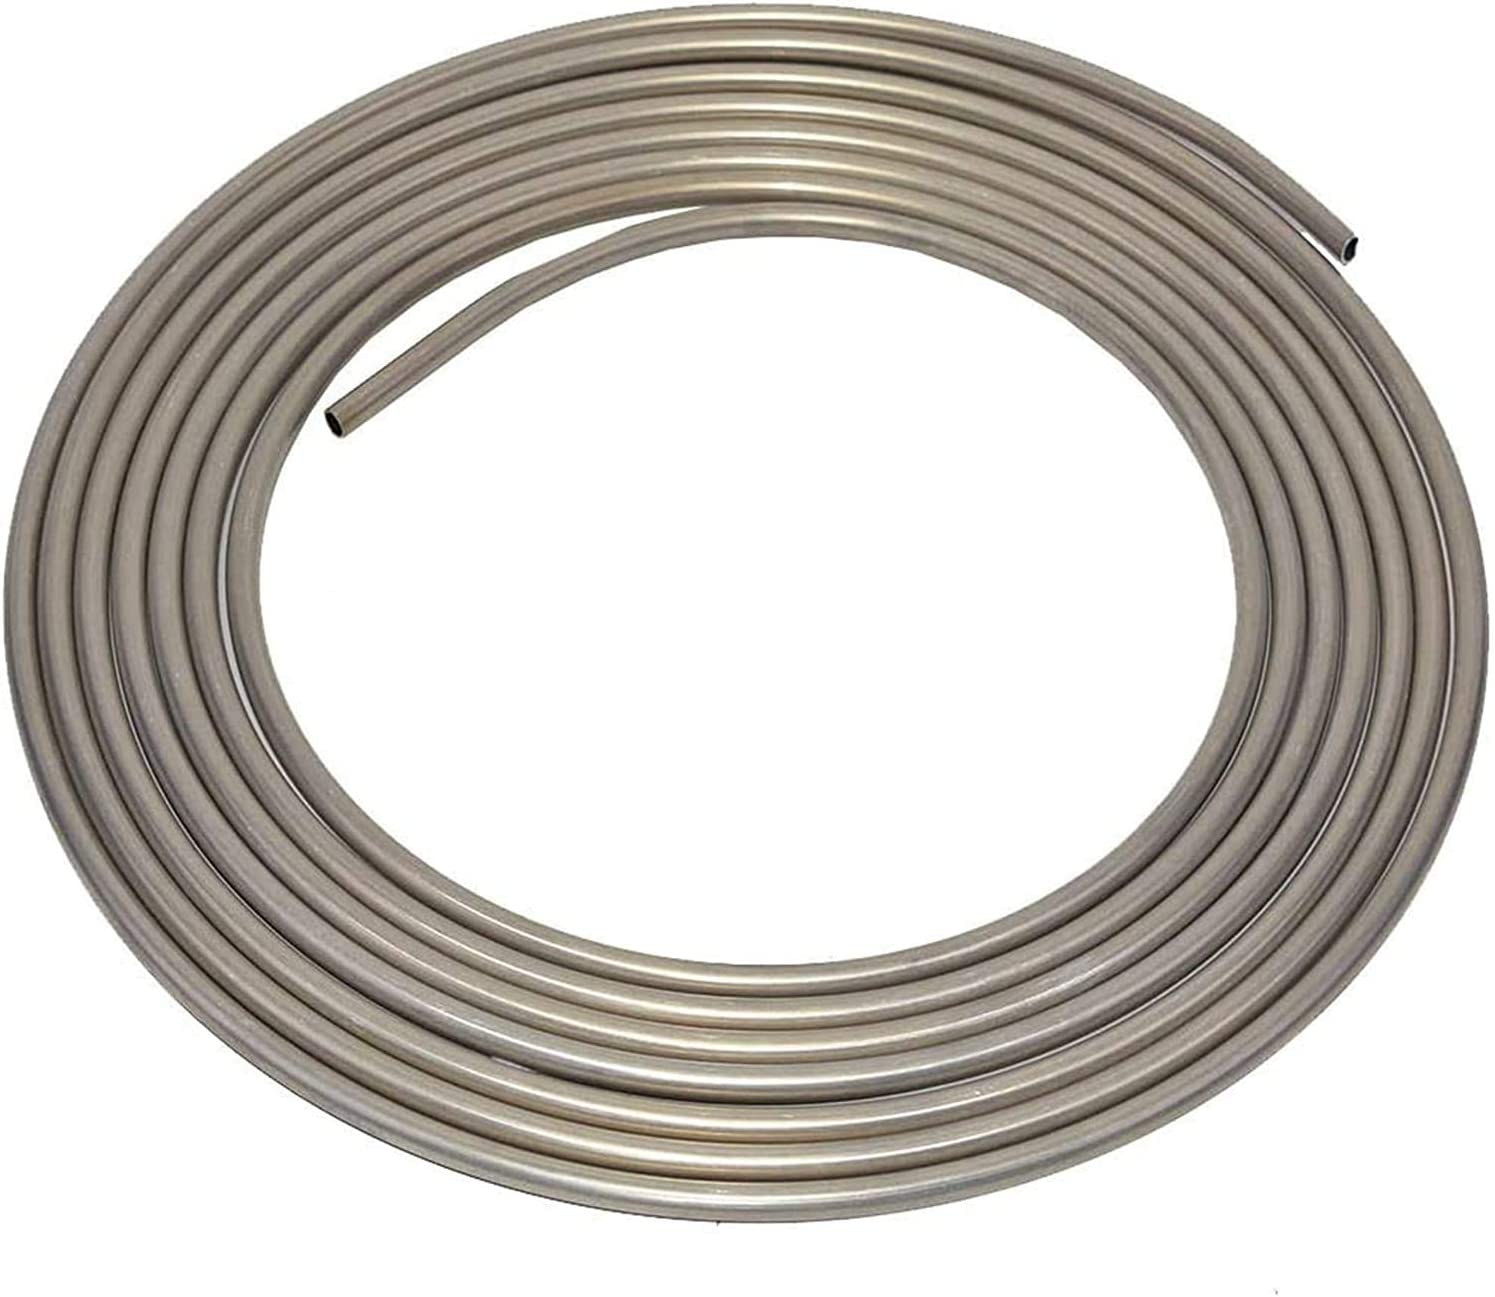 Sales Virginia Beach Mall of SALE items from new works A-Team Performance 3003-Grade Aluminum Coiled Tubing T Fuel Line